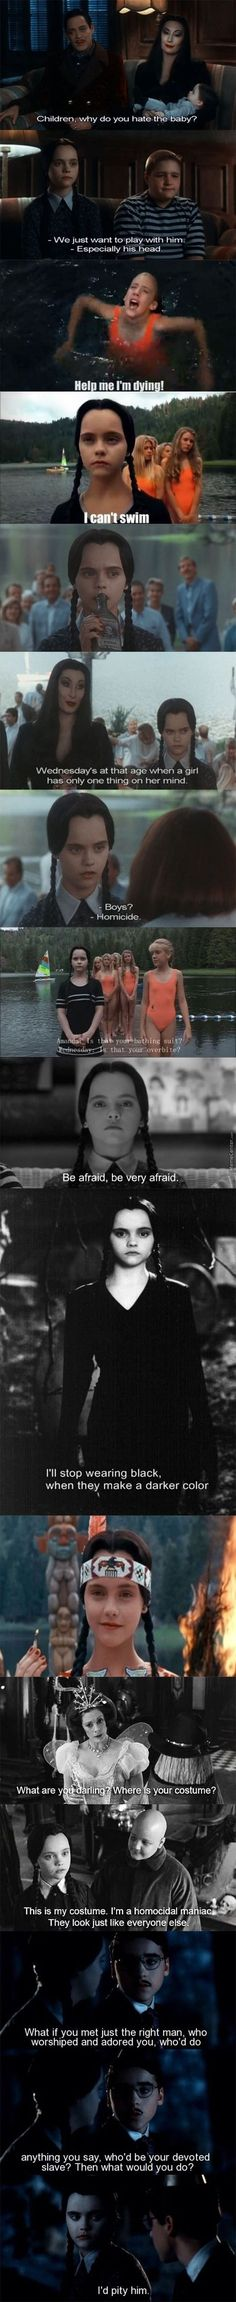 Wednesday Addams should be everyone's role model. The homicidal streak is negotiable.